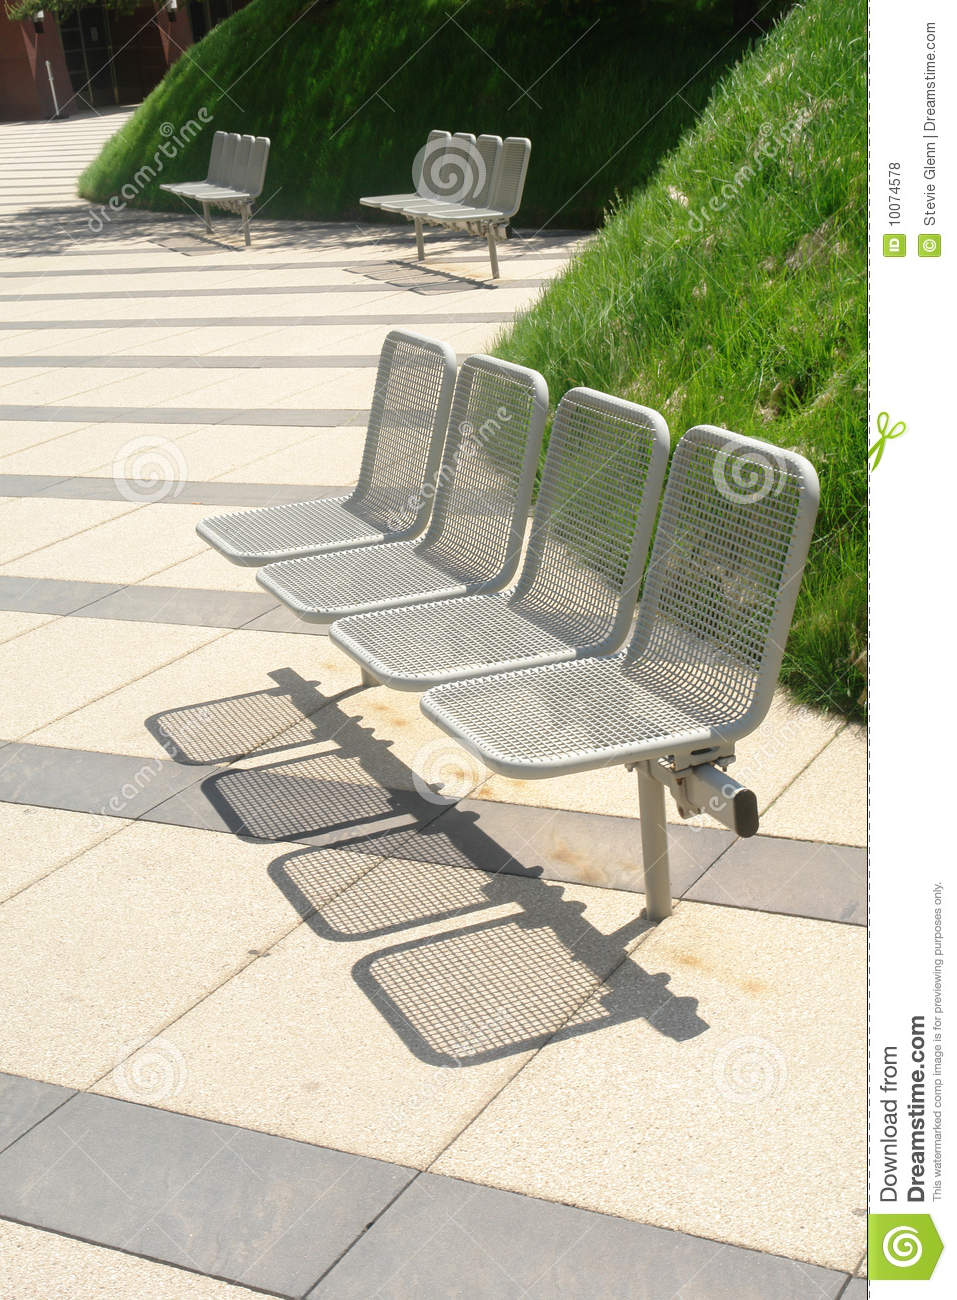 Modern Park Benches Royalty Free Stock Photos - Image: 10074578